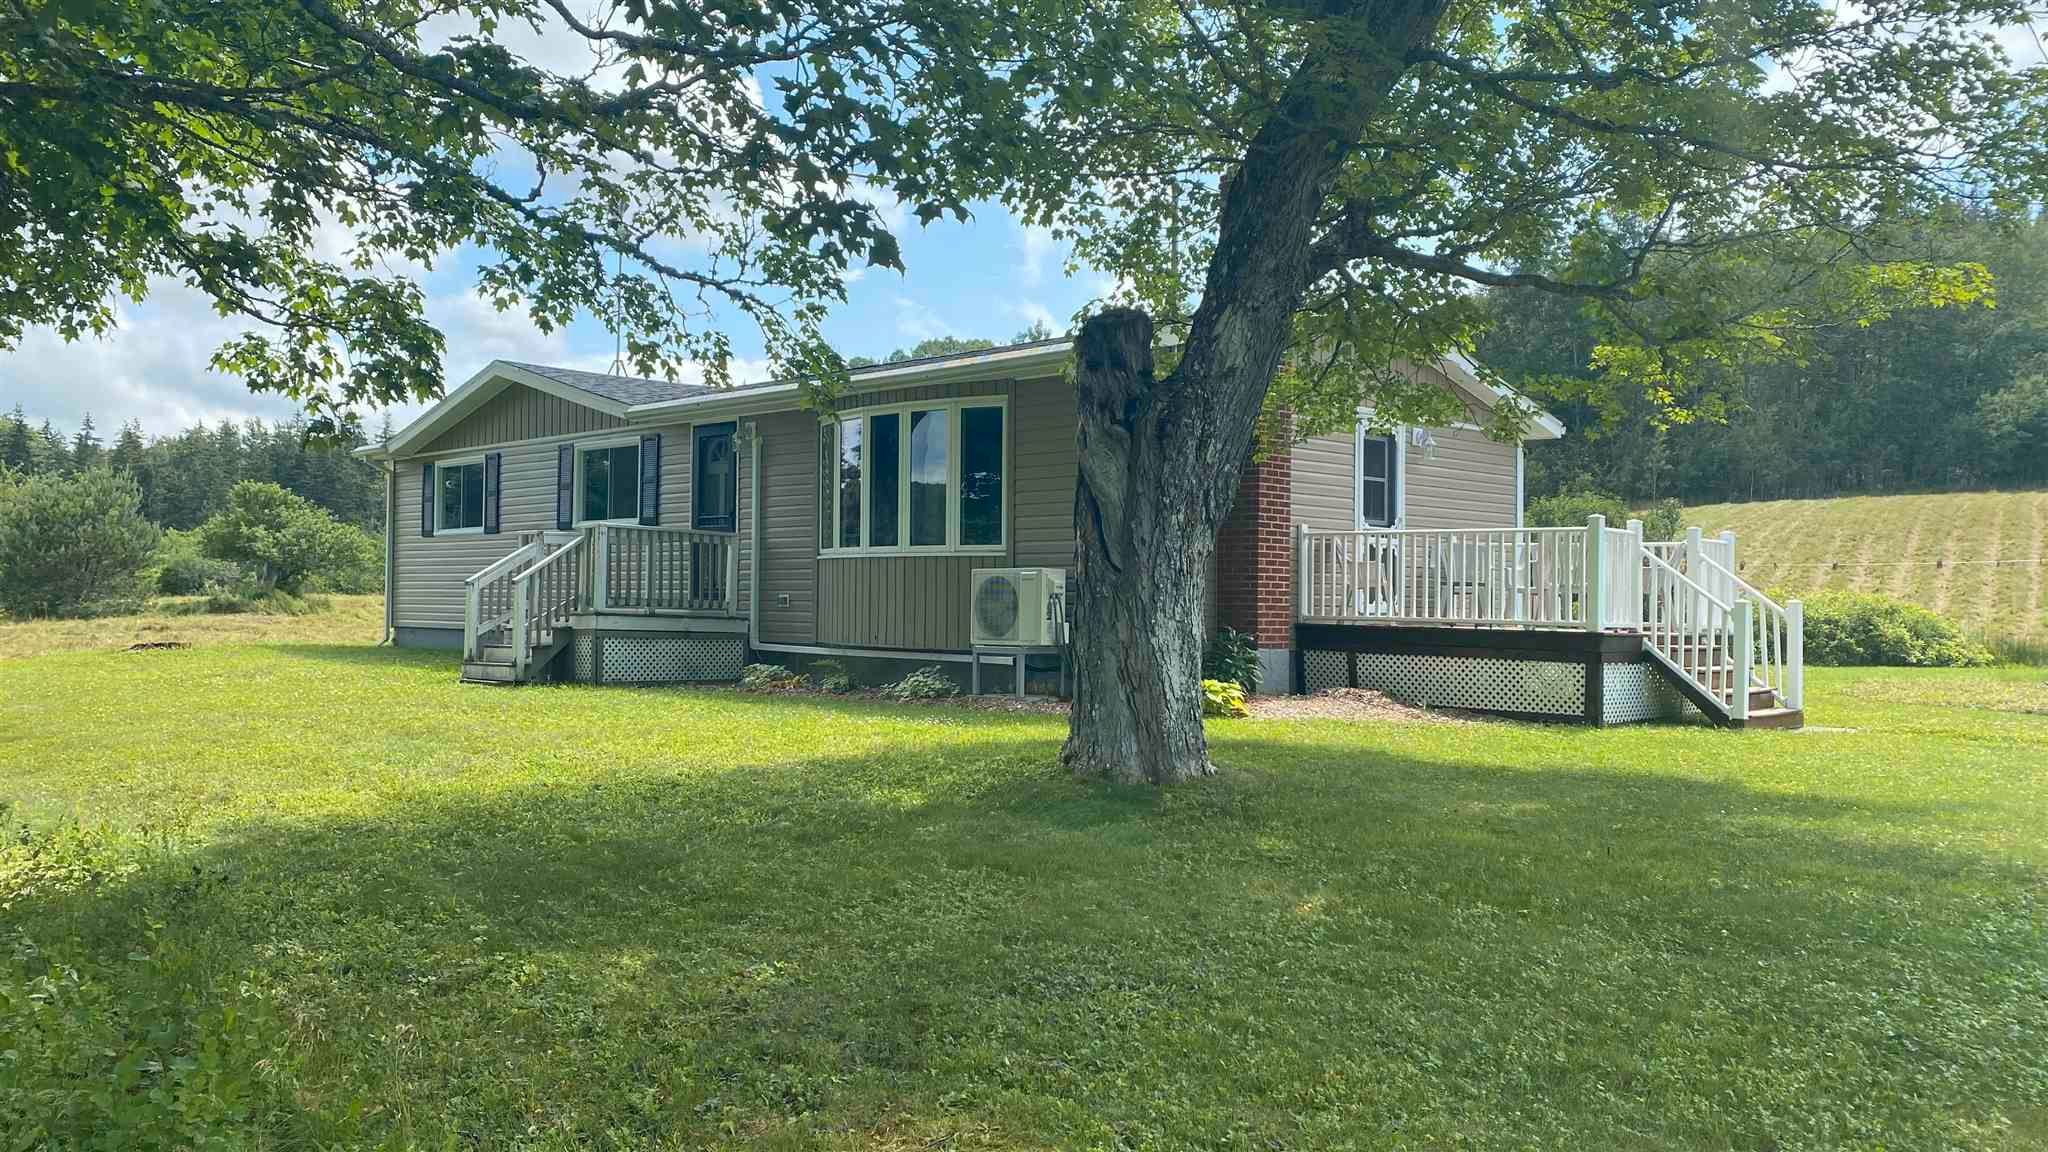 Main Photo: 4859 East River West Side Road in Springville: 108-Rural Pictou County Residential for sale (Northern Region)  : MLS®# 202118937